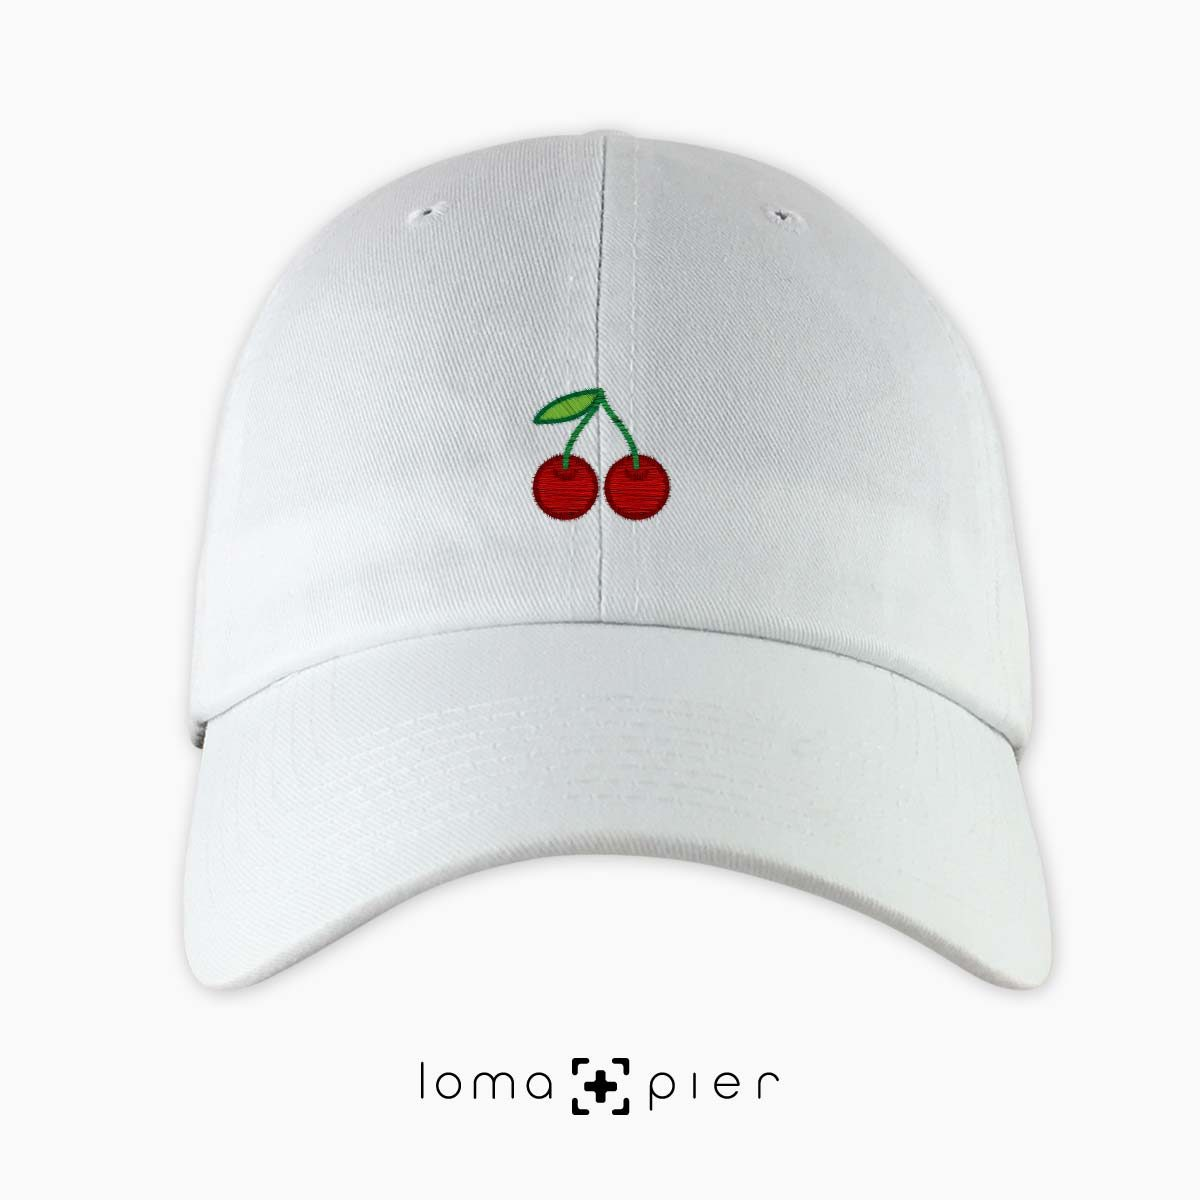 CHERRIES icon embroidered on a white dad hat by loma+pier hat store made in the USA